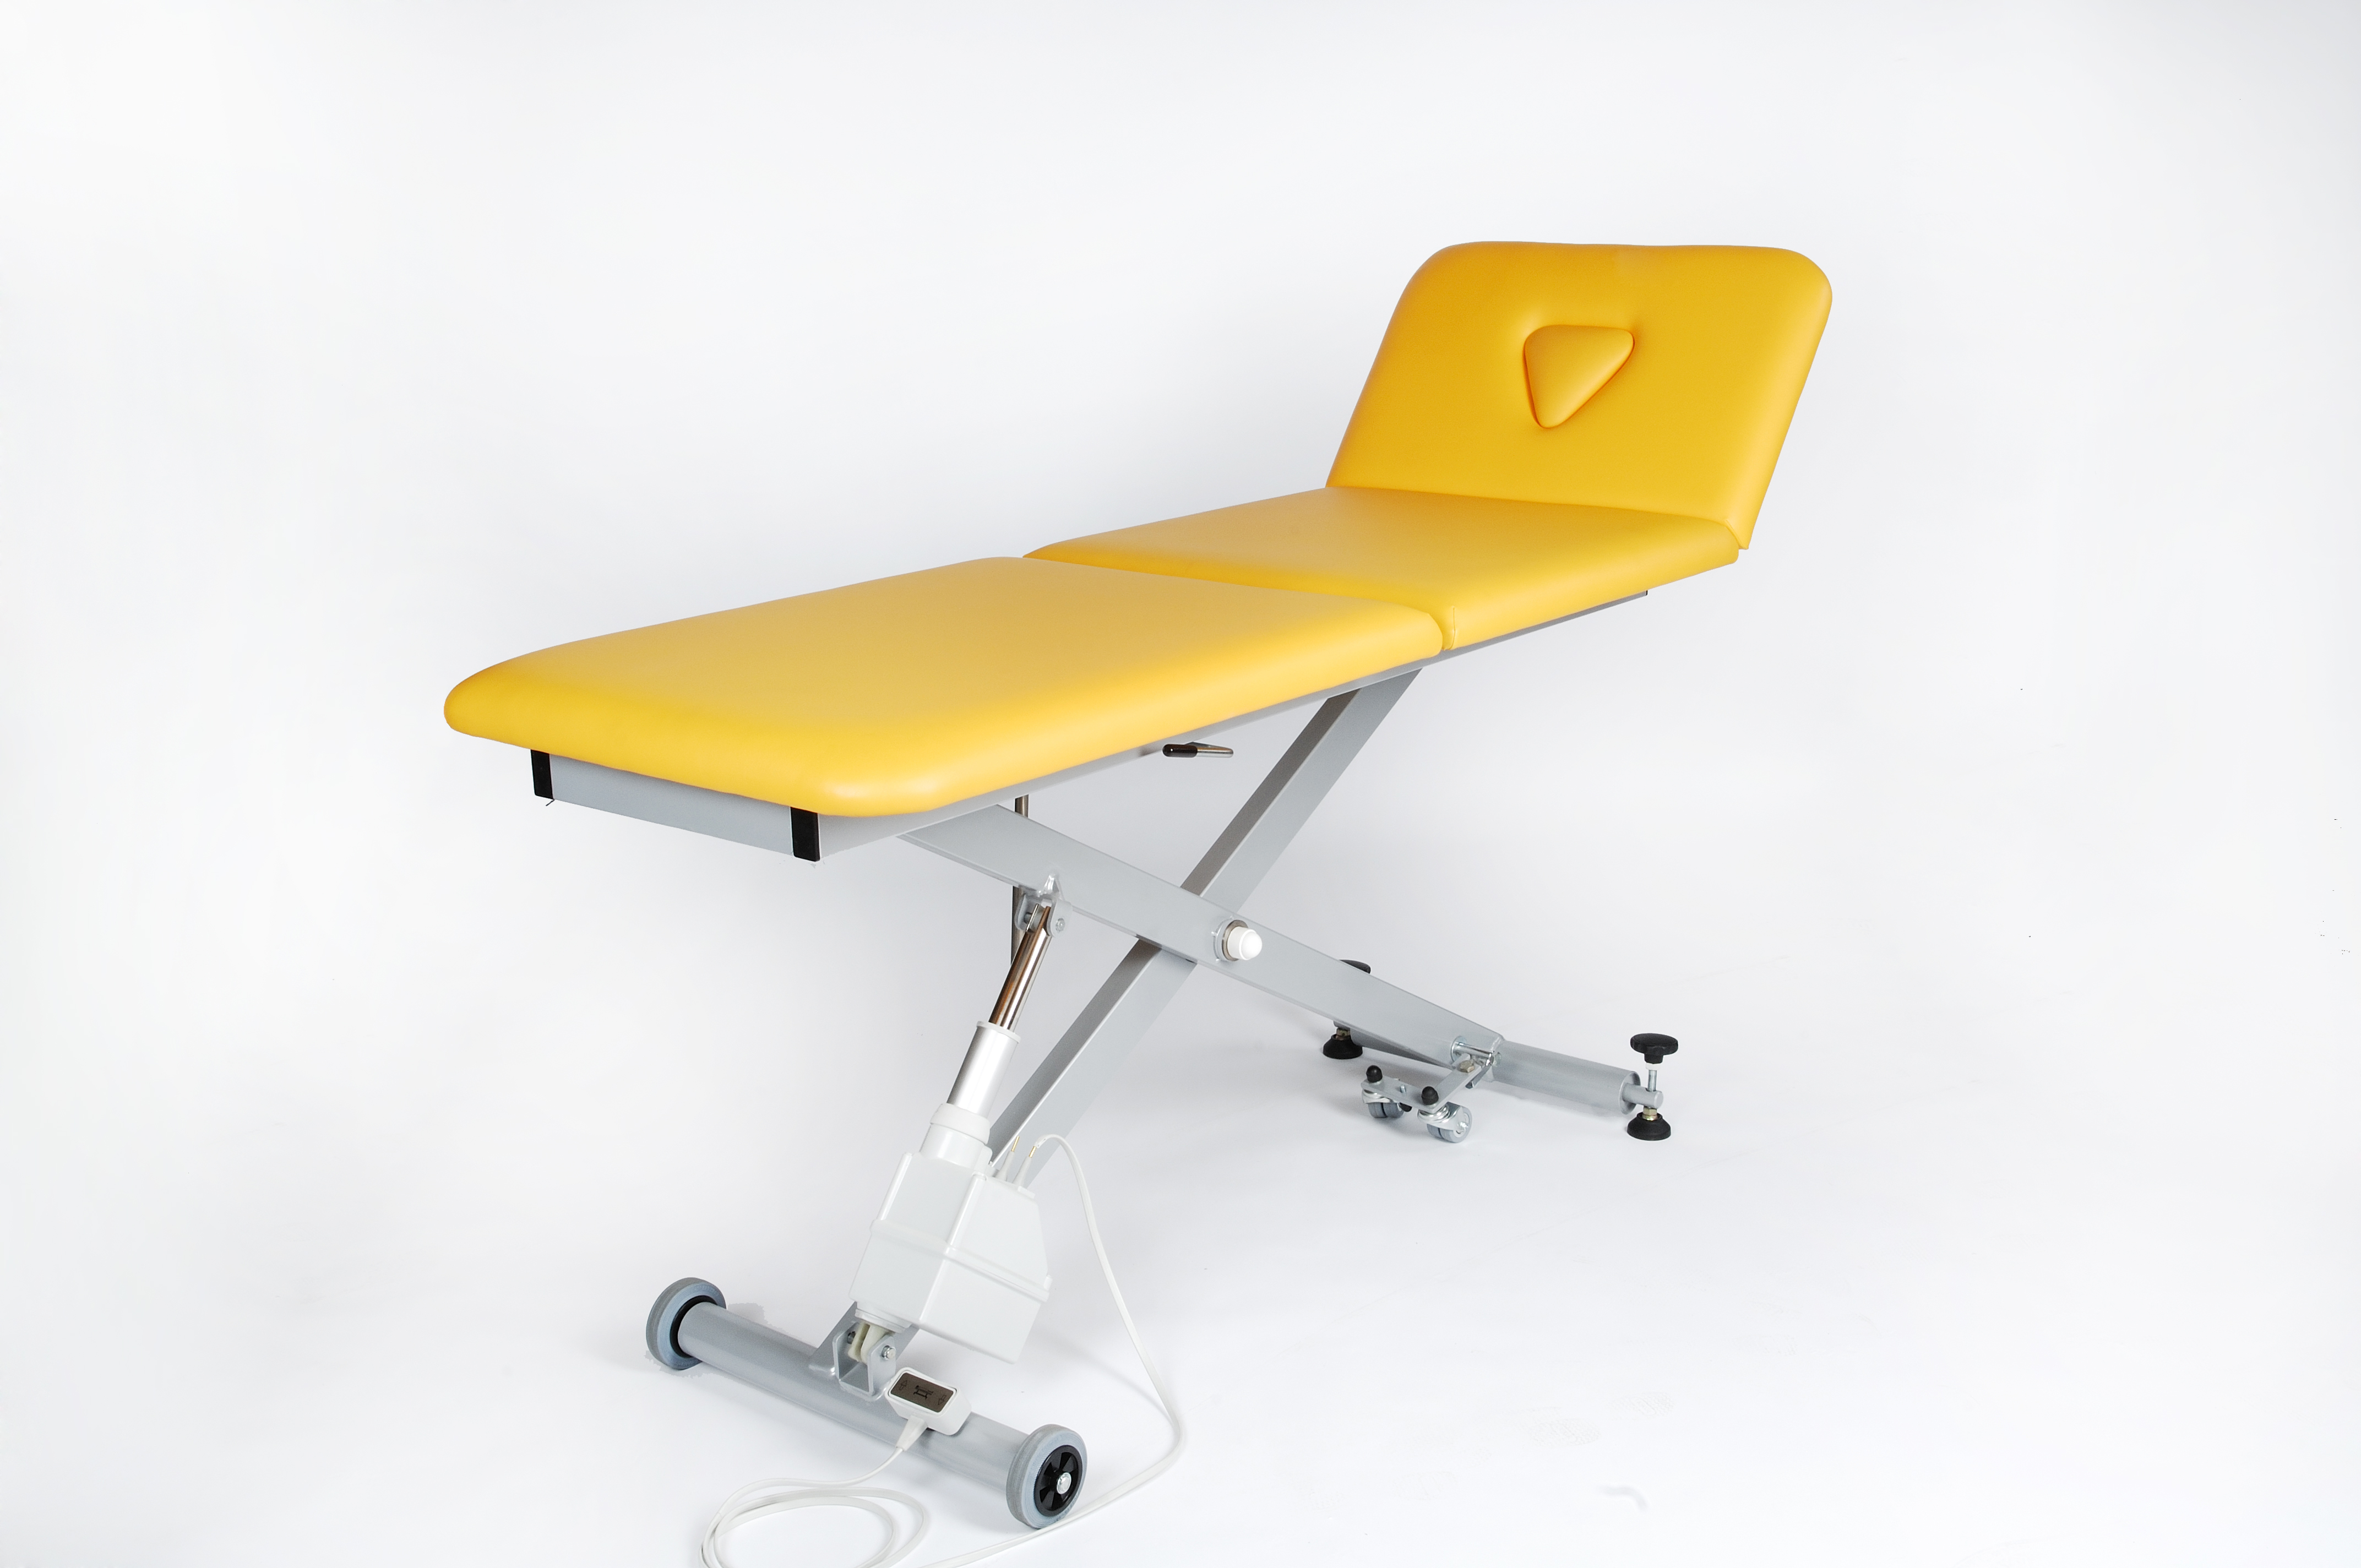 Basis Therapieliege